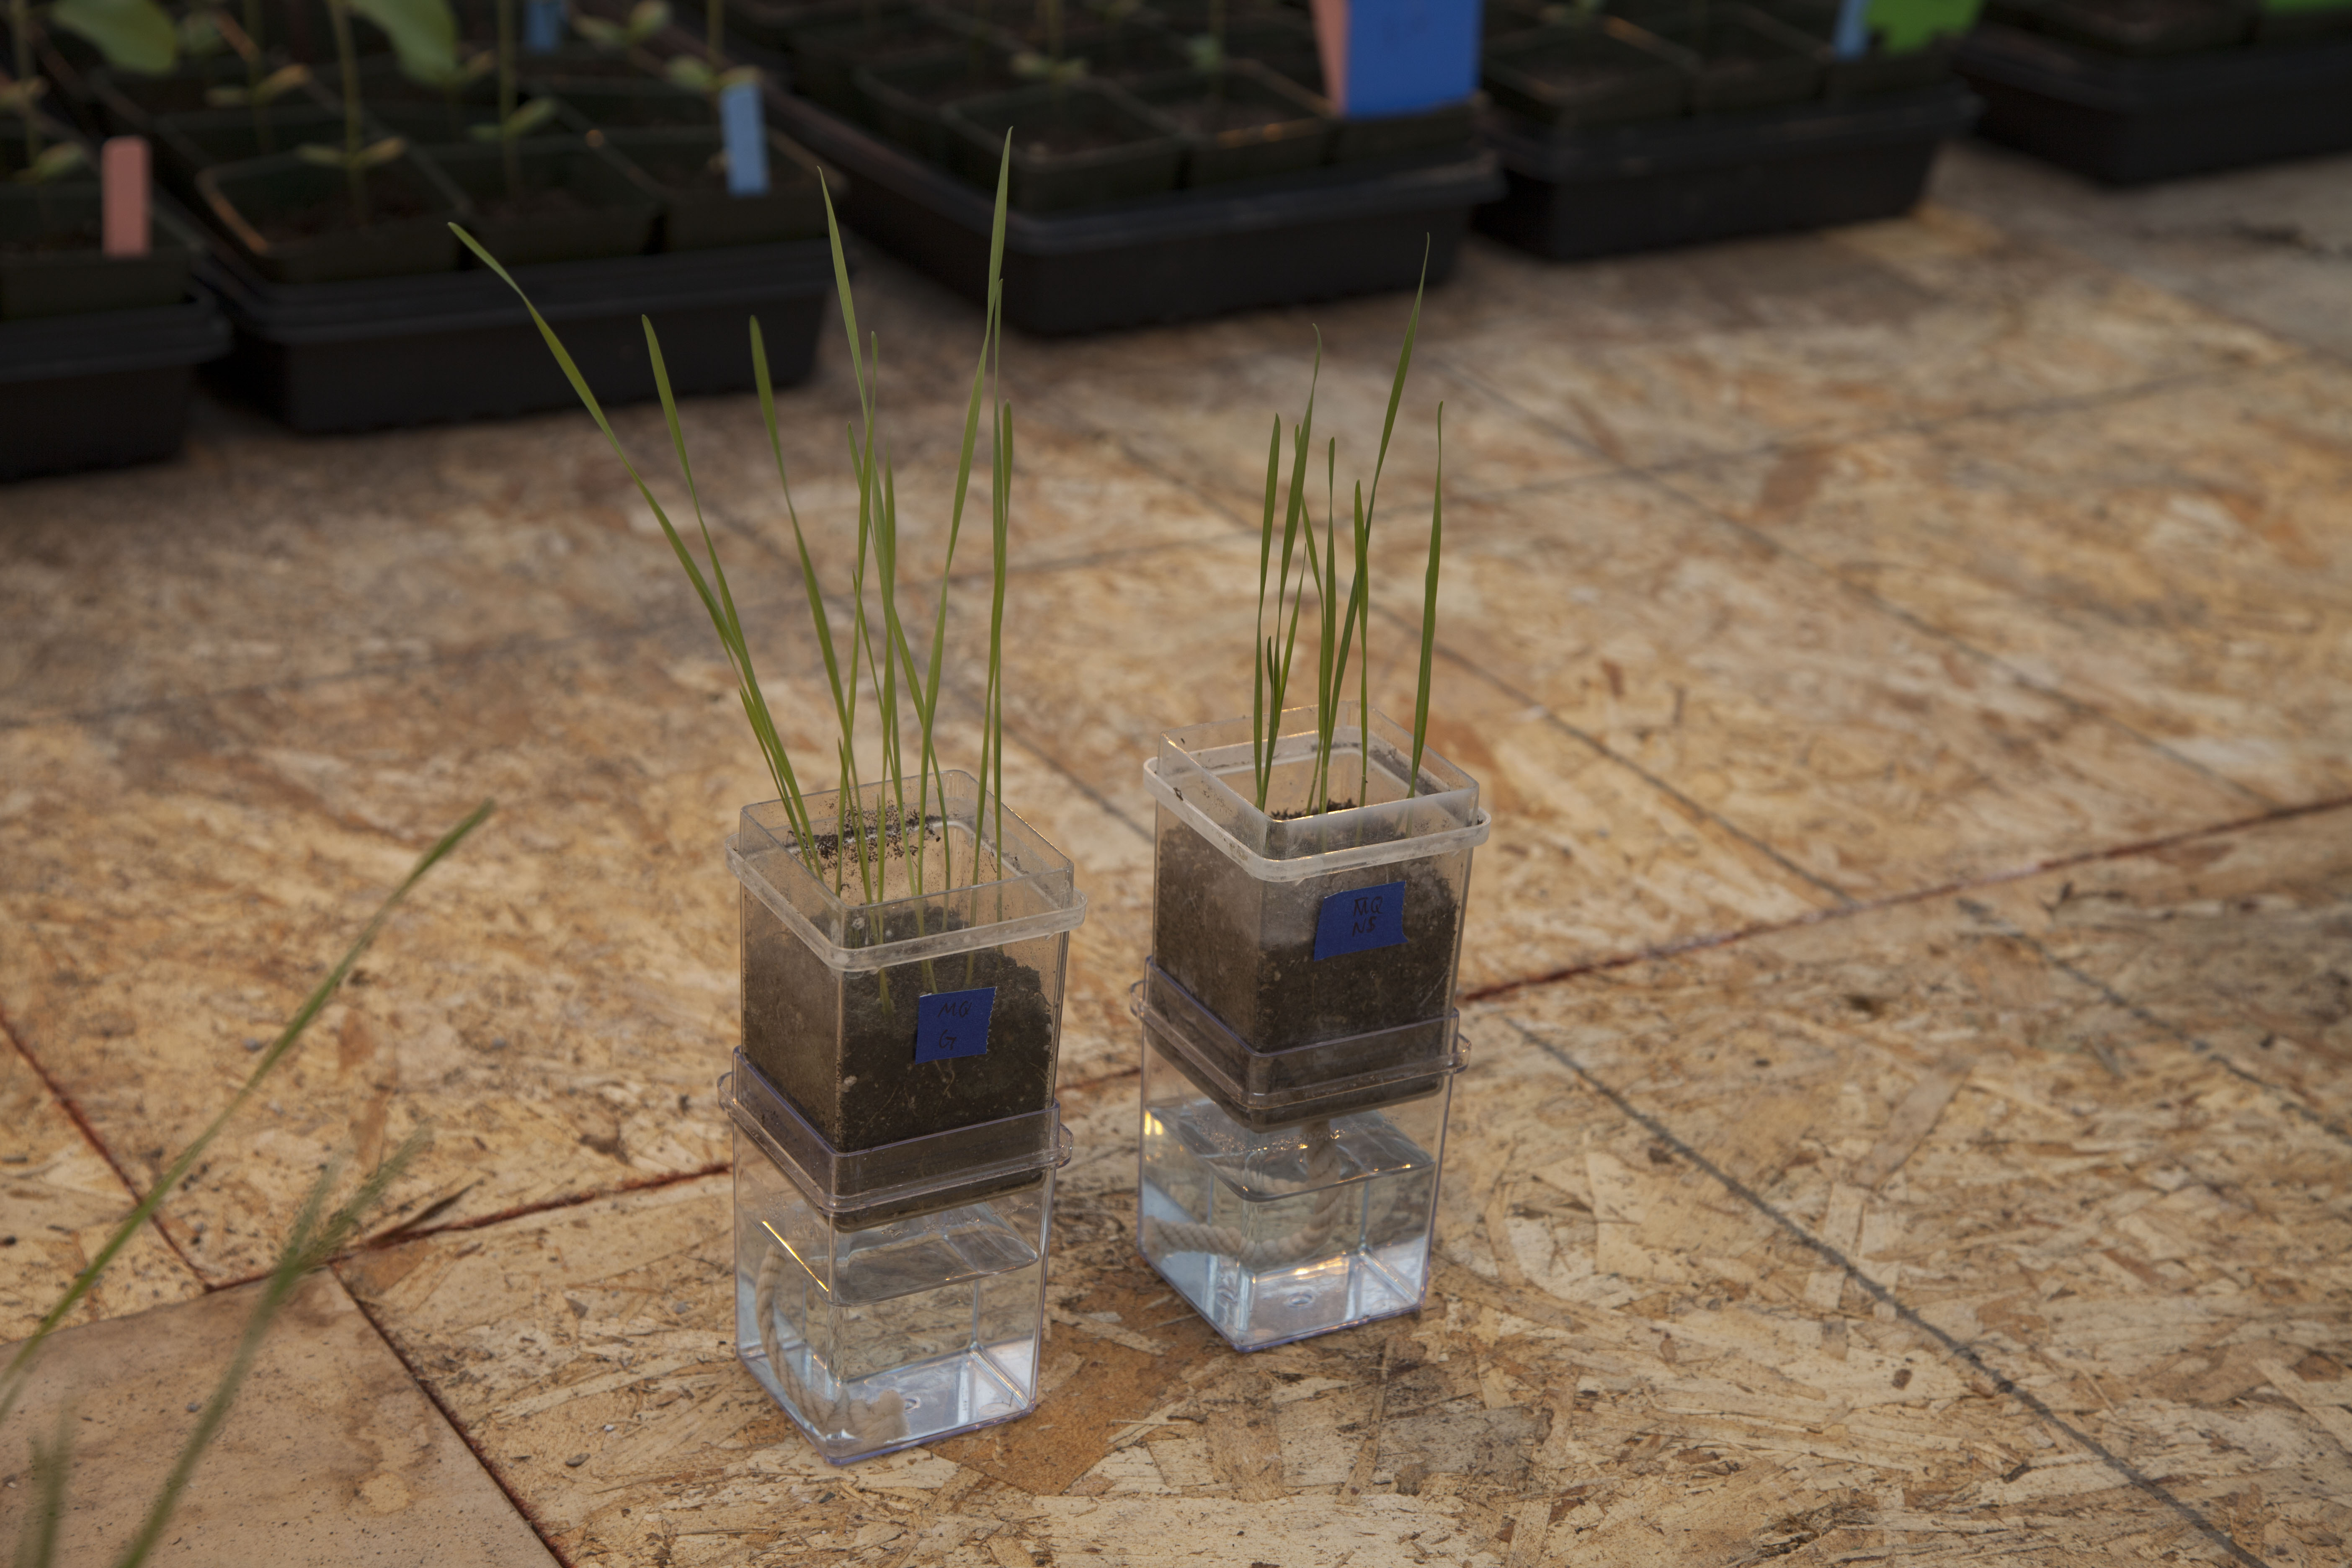 Rice plants treated with endophytes (left) show more biomass growth than untreated plants (right).